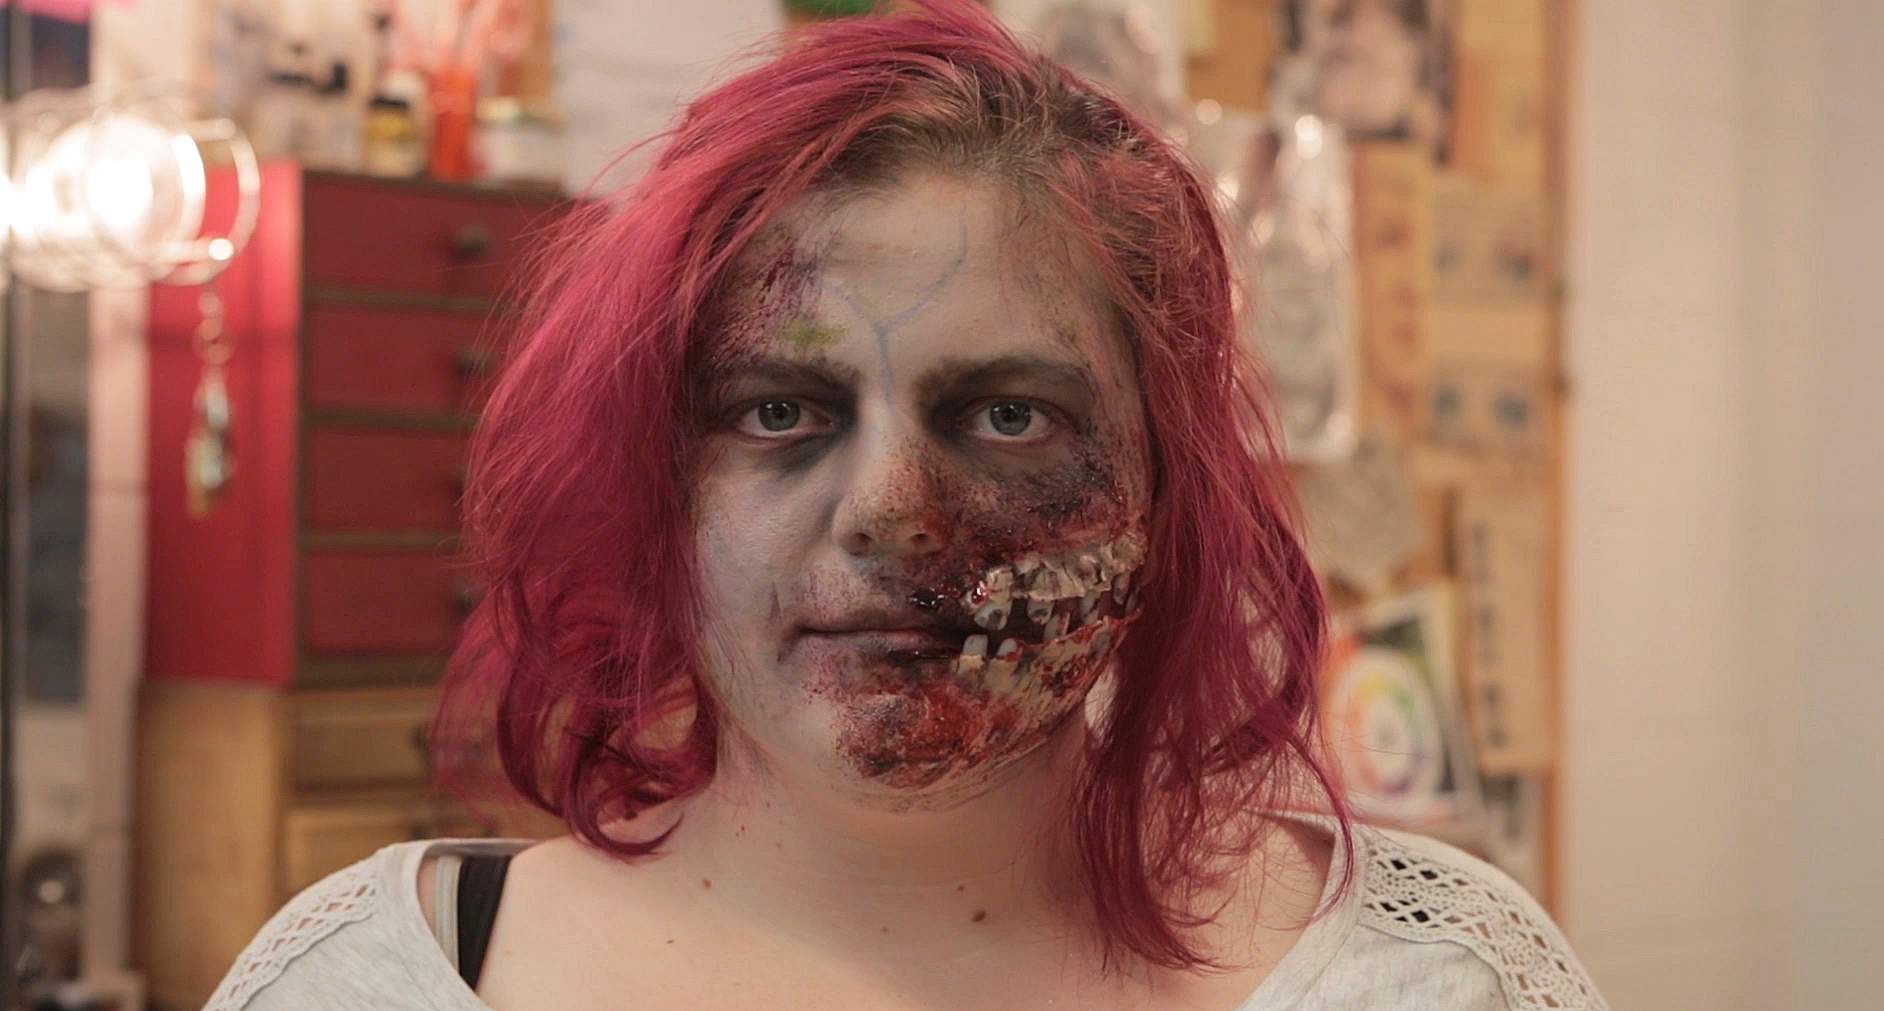 Student in zombie makeup